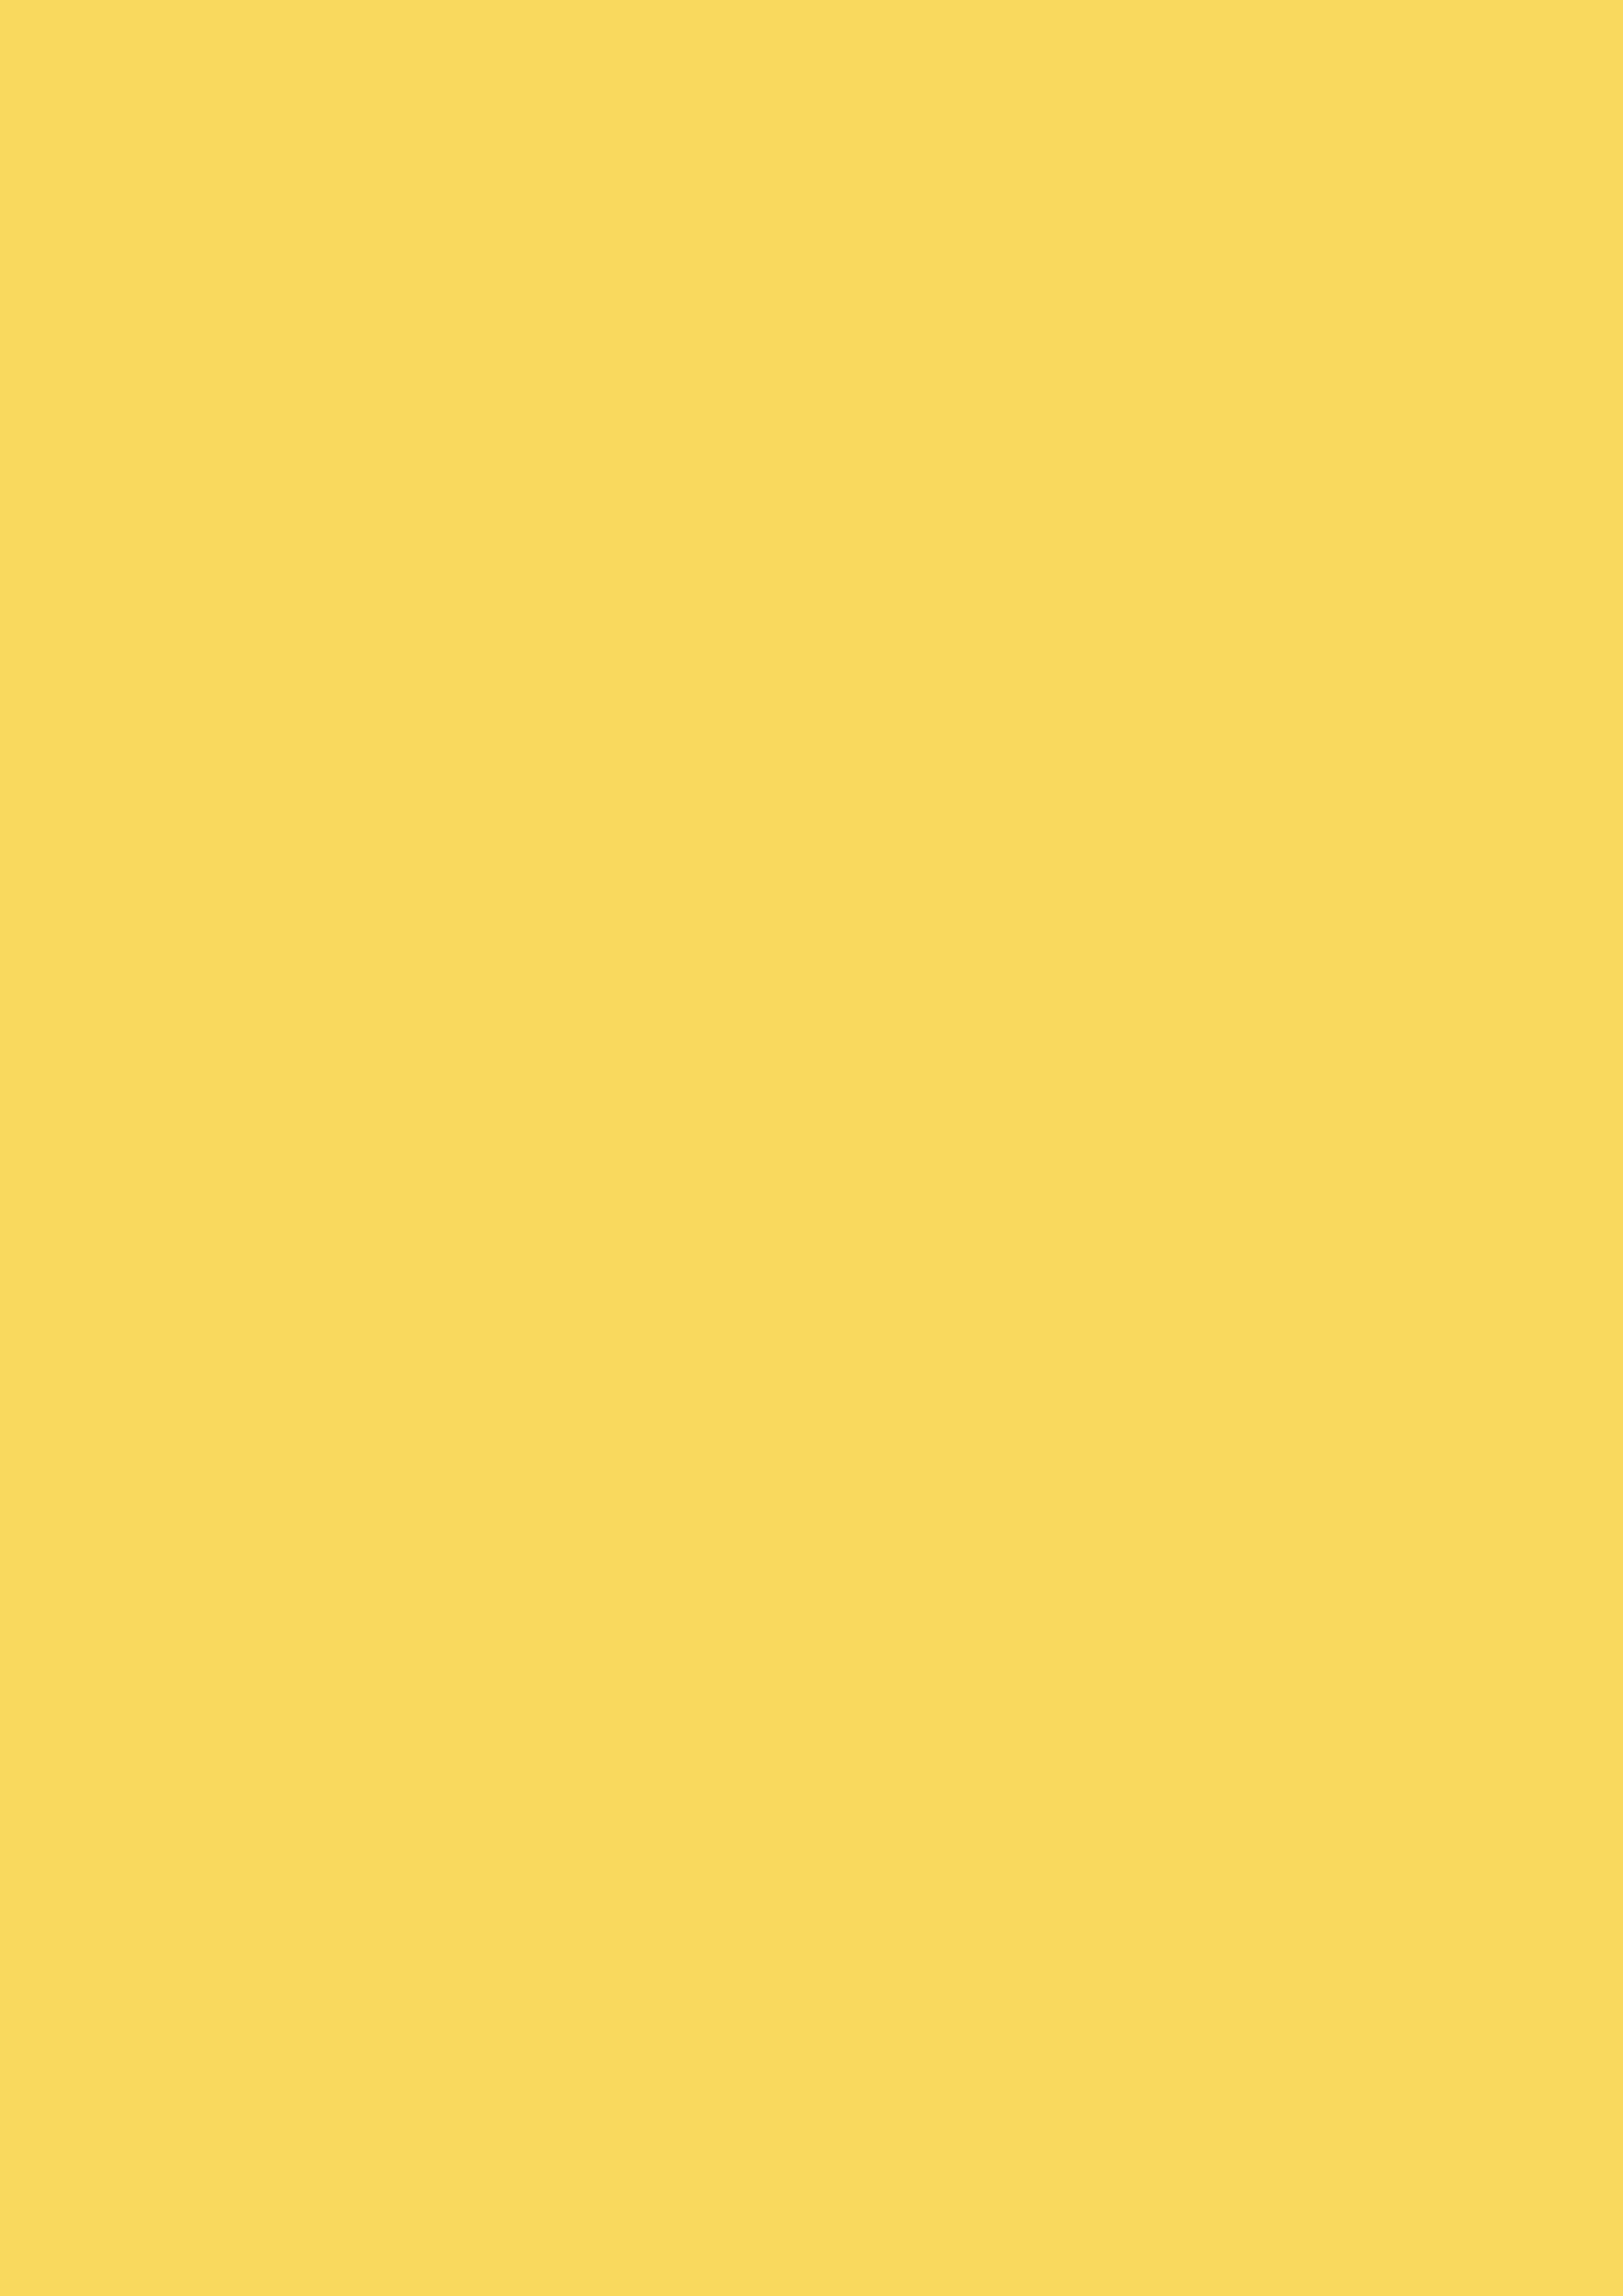 2480x3508 Naples Yellow Solid Color Background